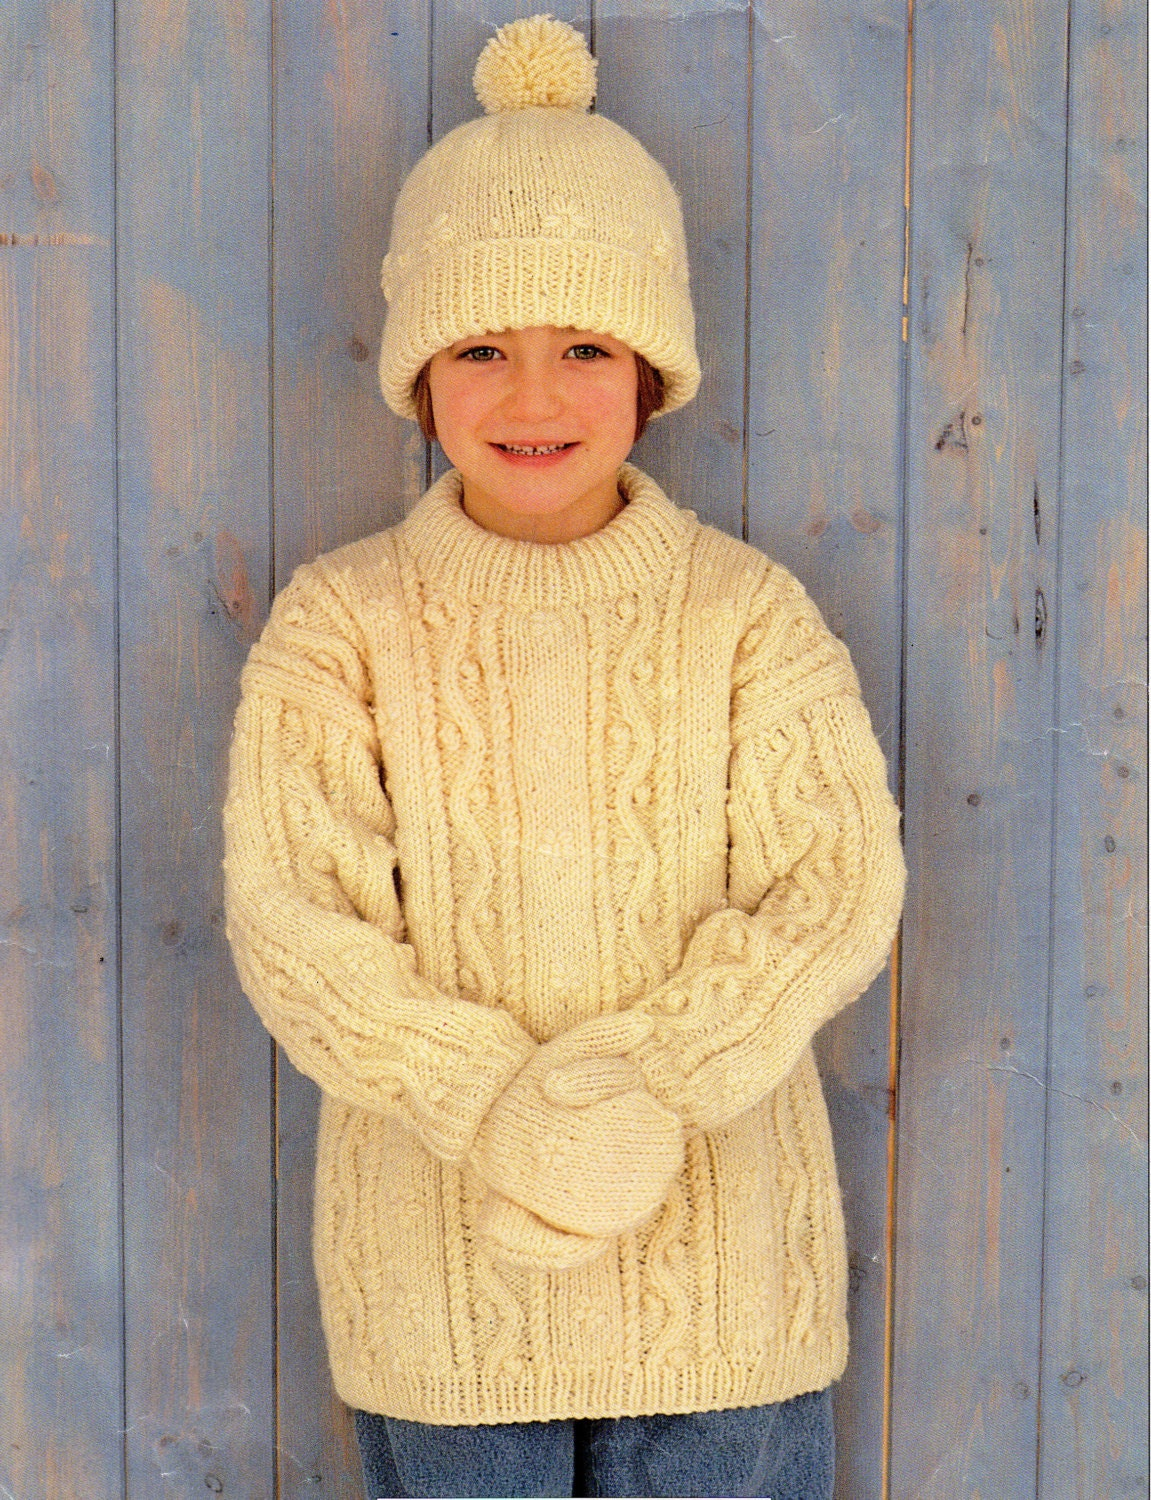 Childs Aran Jumper Knitting Pattern : Childrens Aran Sweater Knitting Pattern Childs Aran Sweater